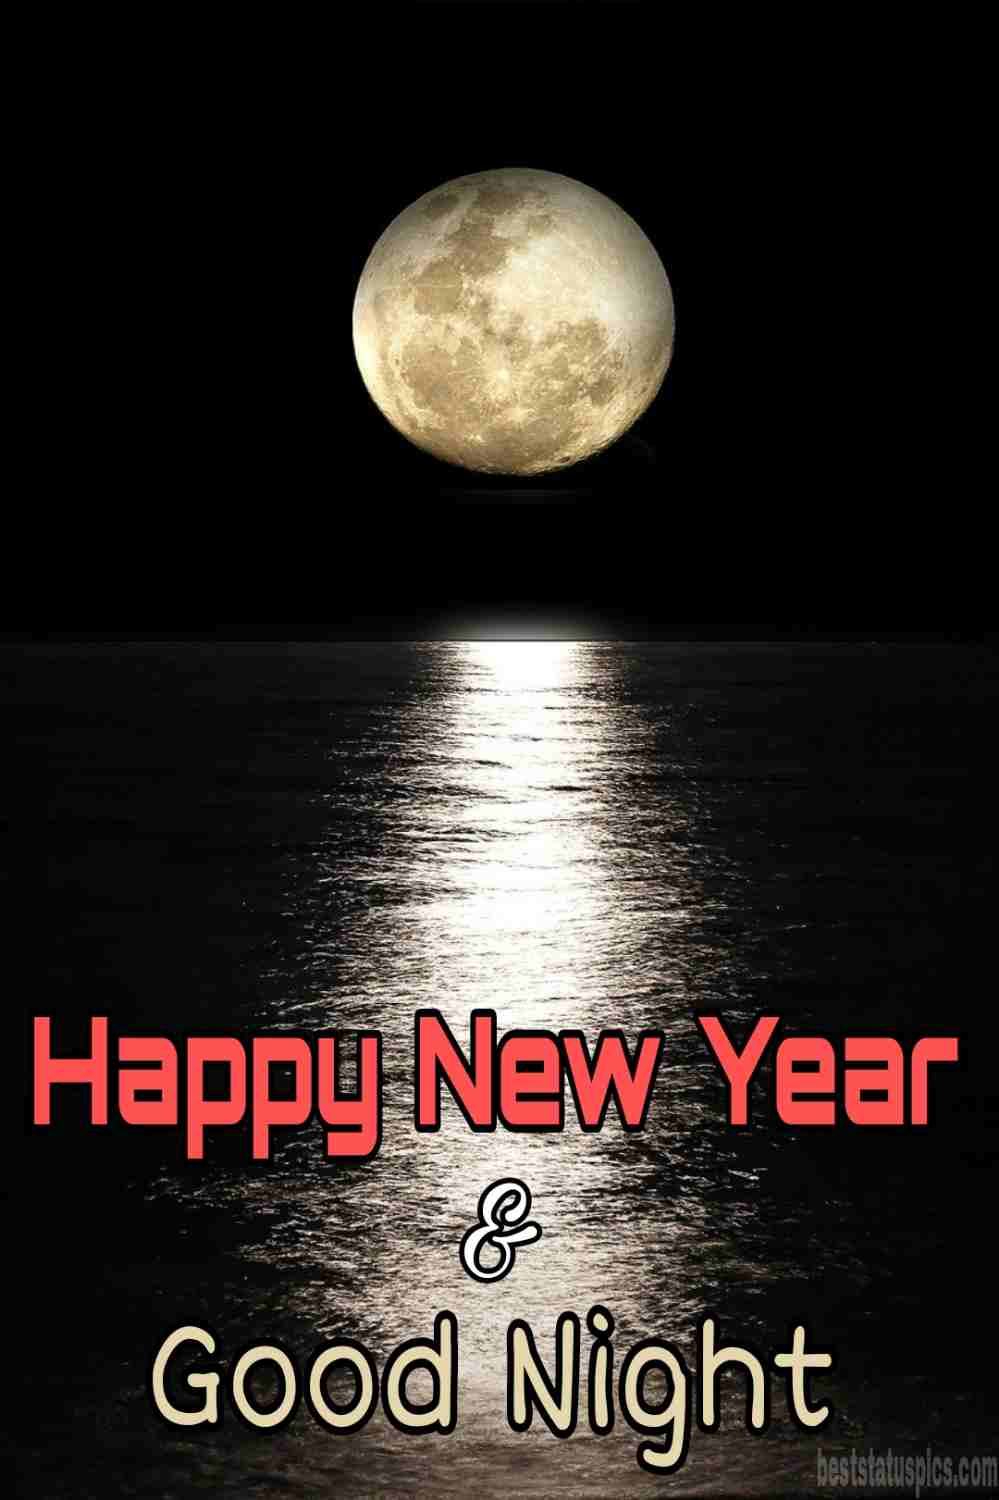 Happy new year 2022 and Good night greetings and images with moon, sea and night sky